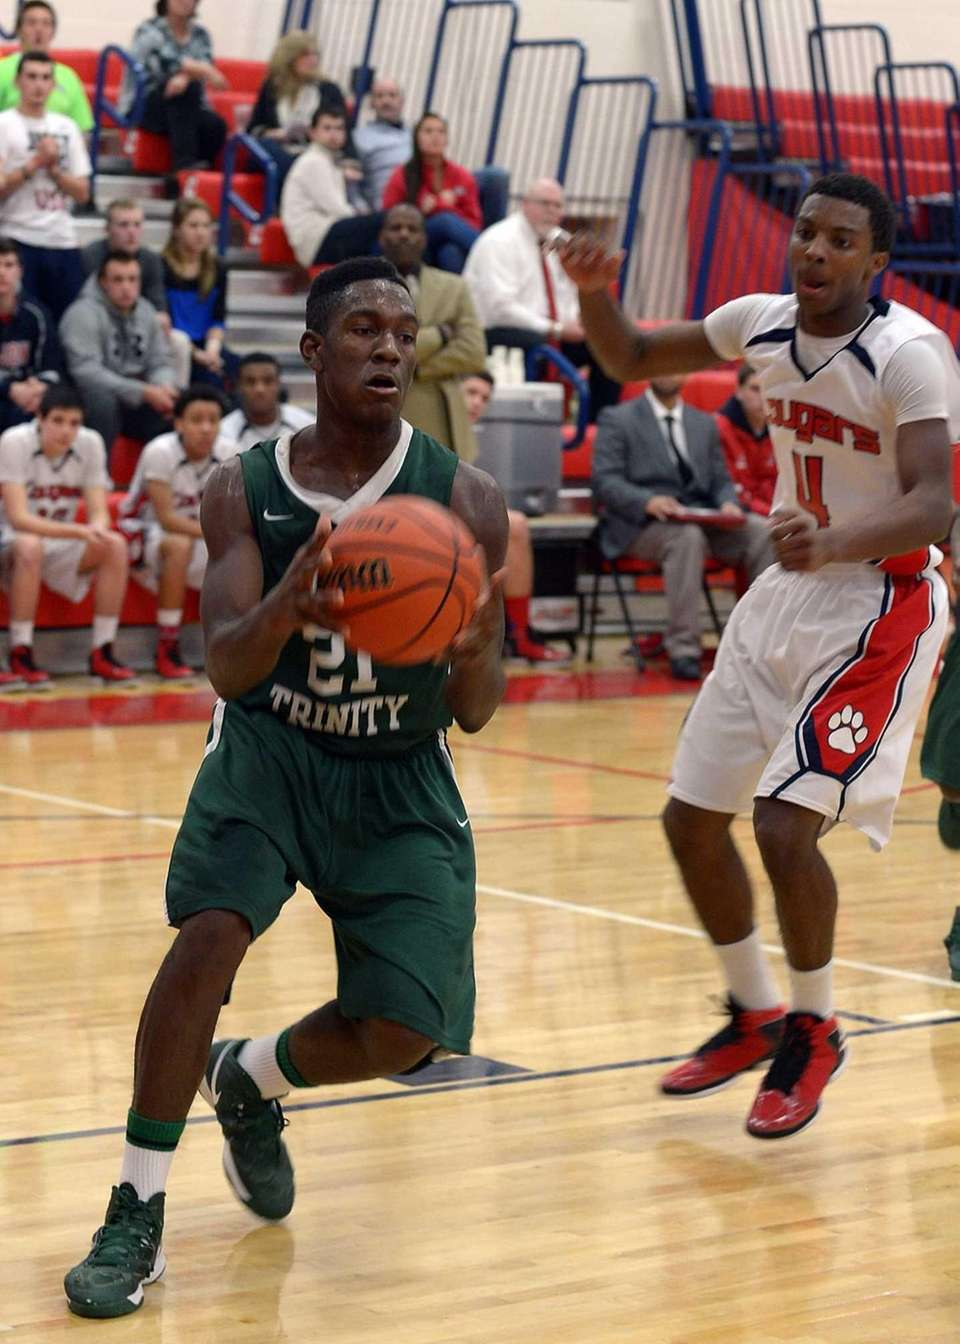 Holy Trinity's Isaish Rowe-Ukey drives to the basket